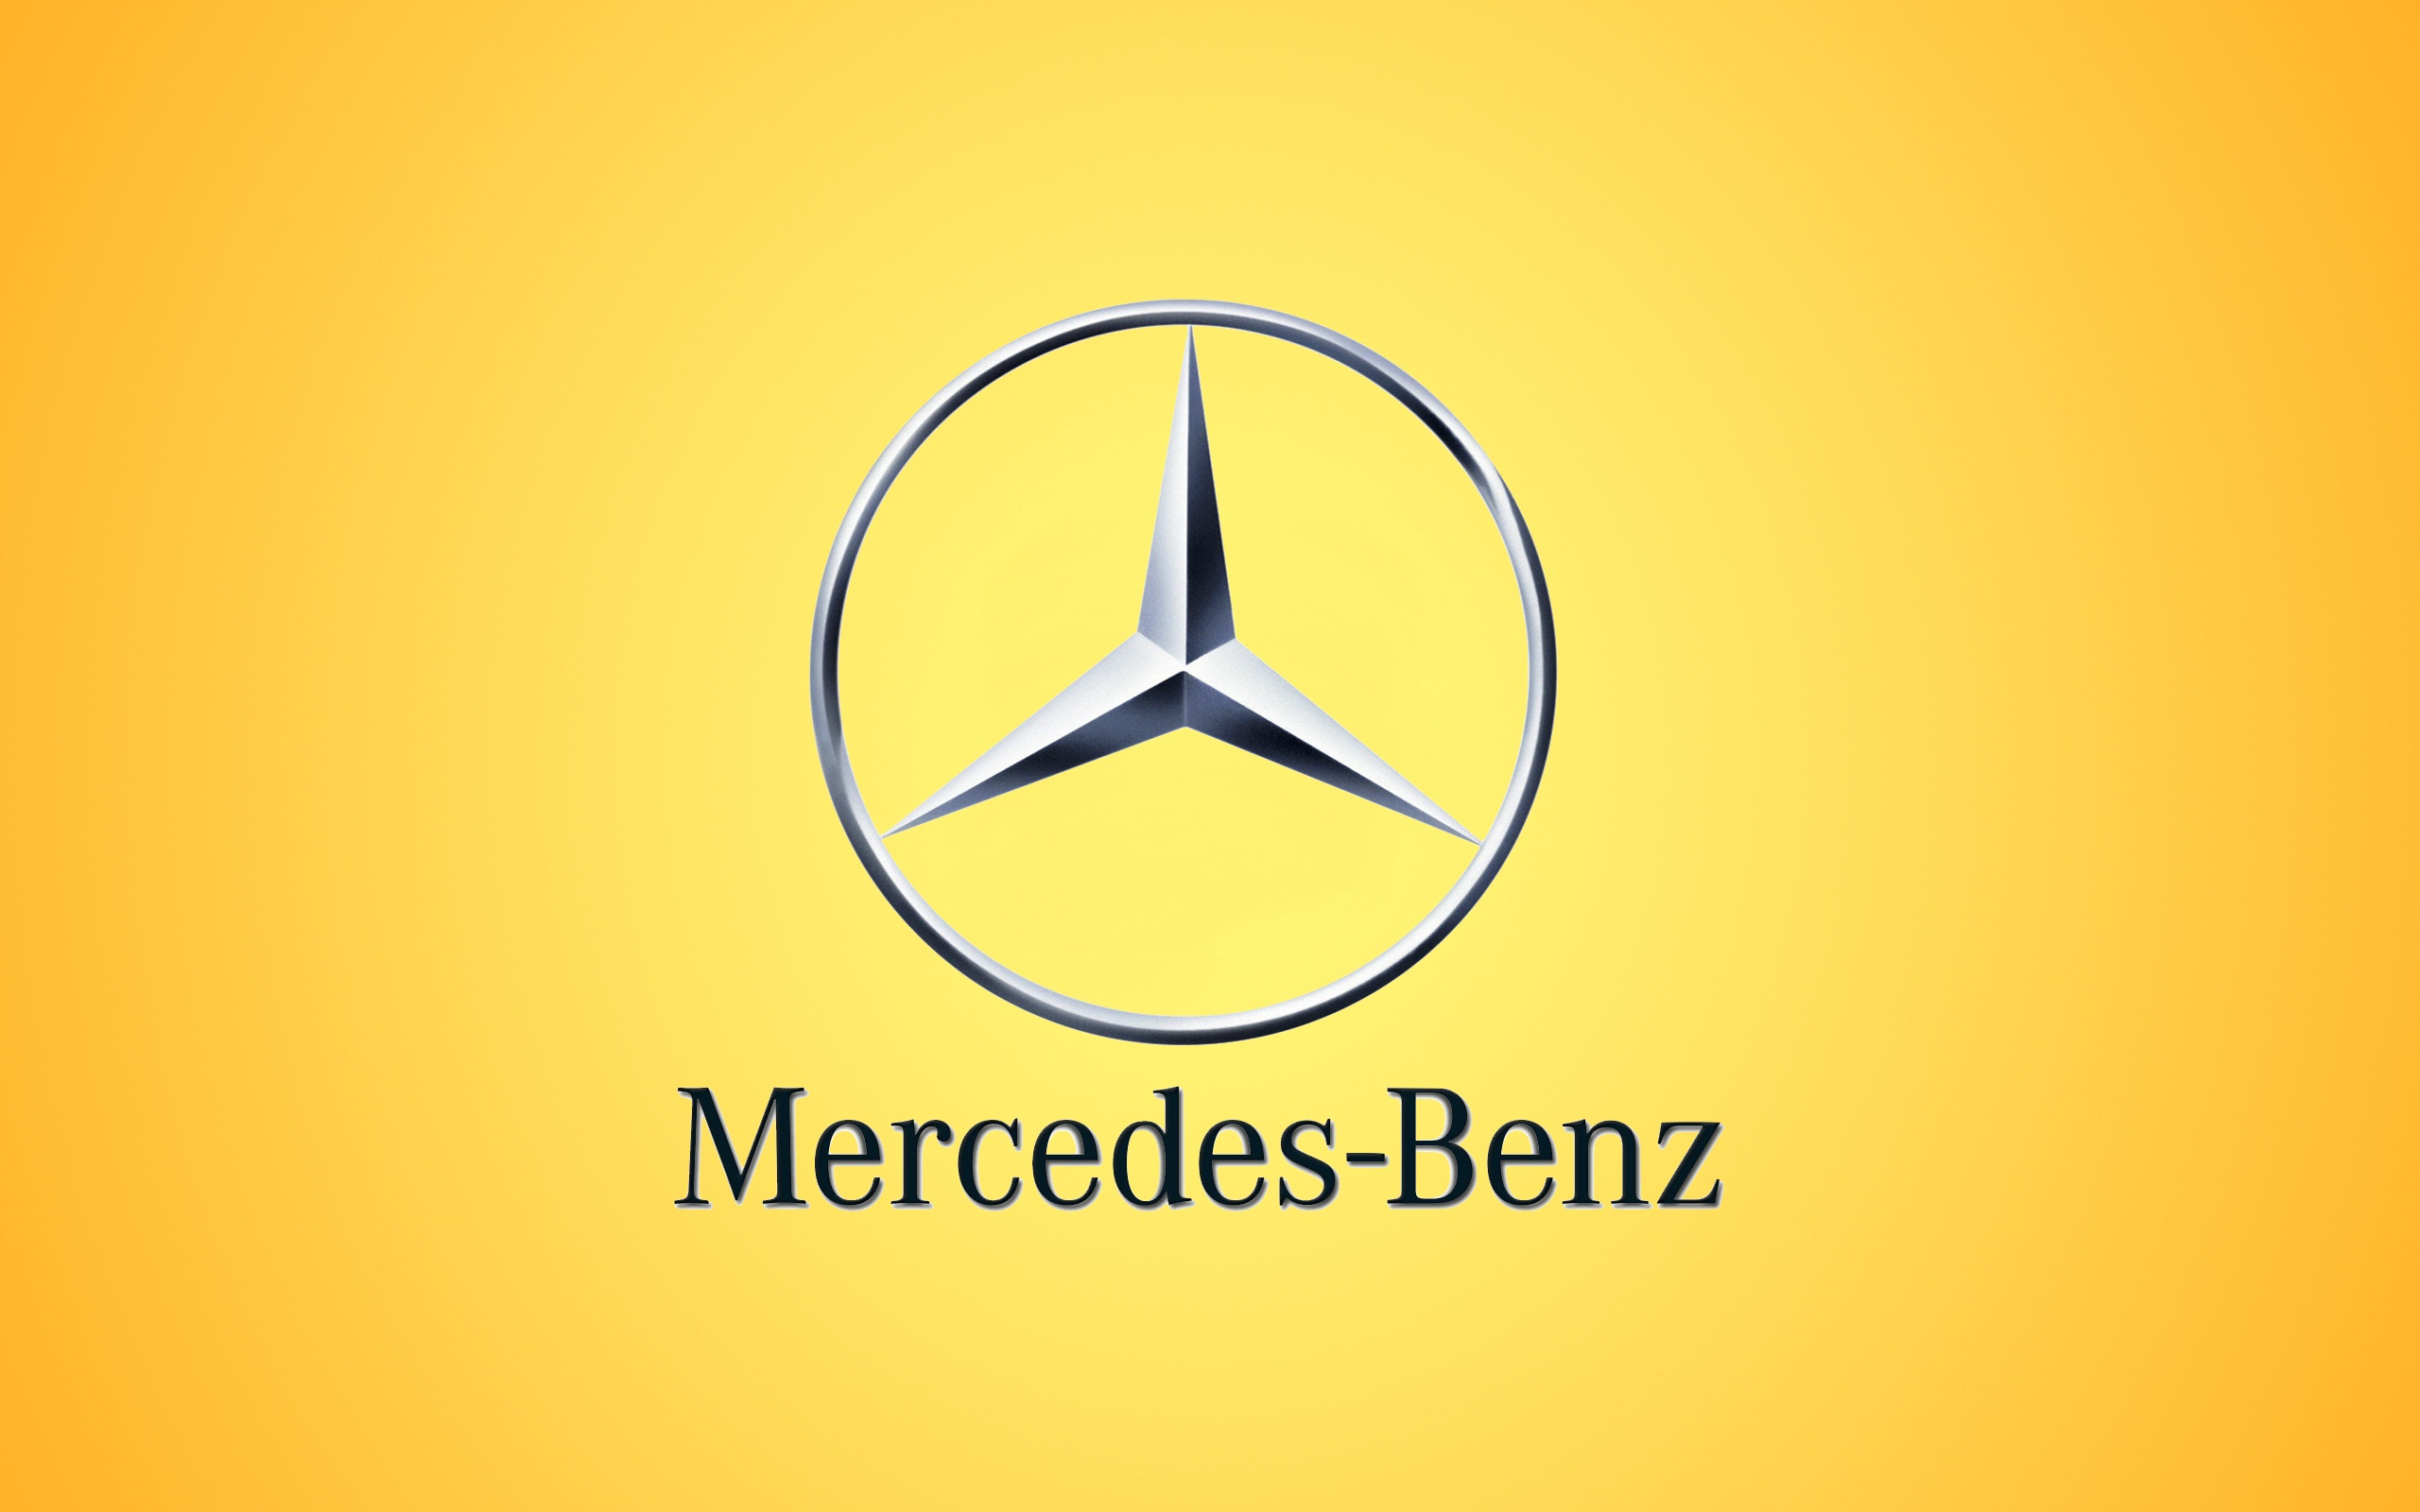 benz logo wallpapers wallpaper - photo #29